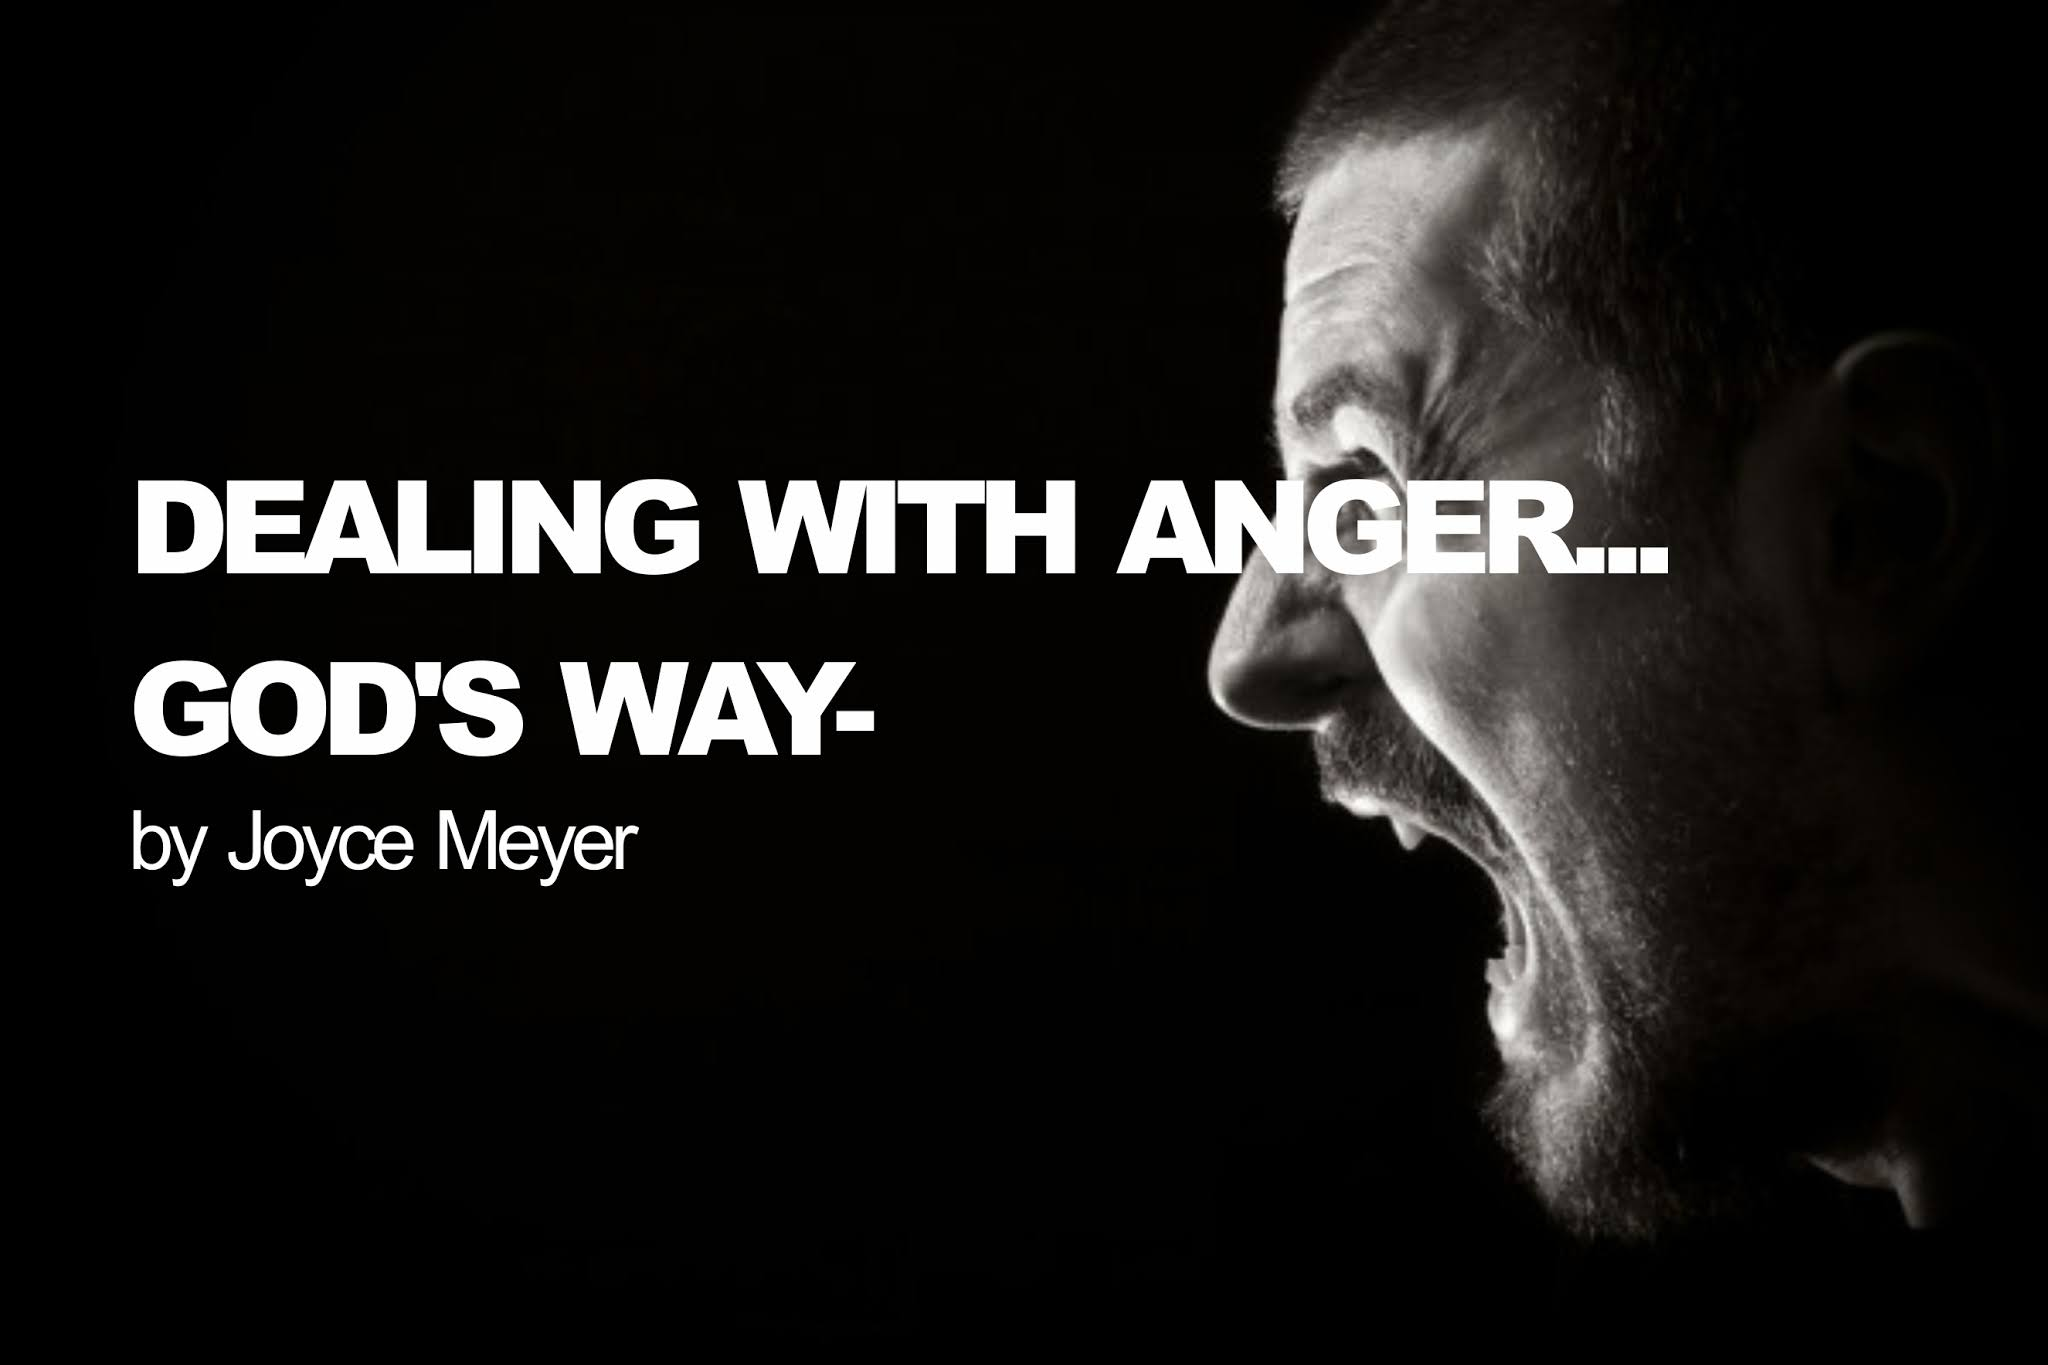 Dealing with Anger...God's Way - by Joyce Meyer